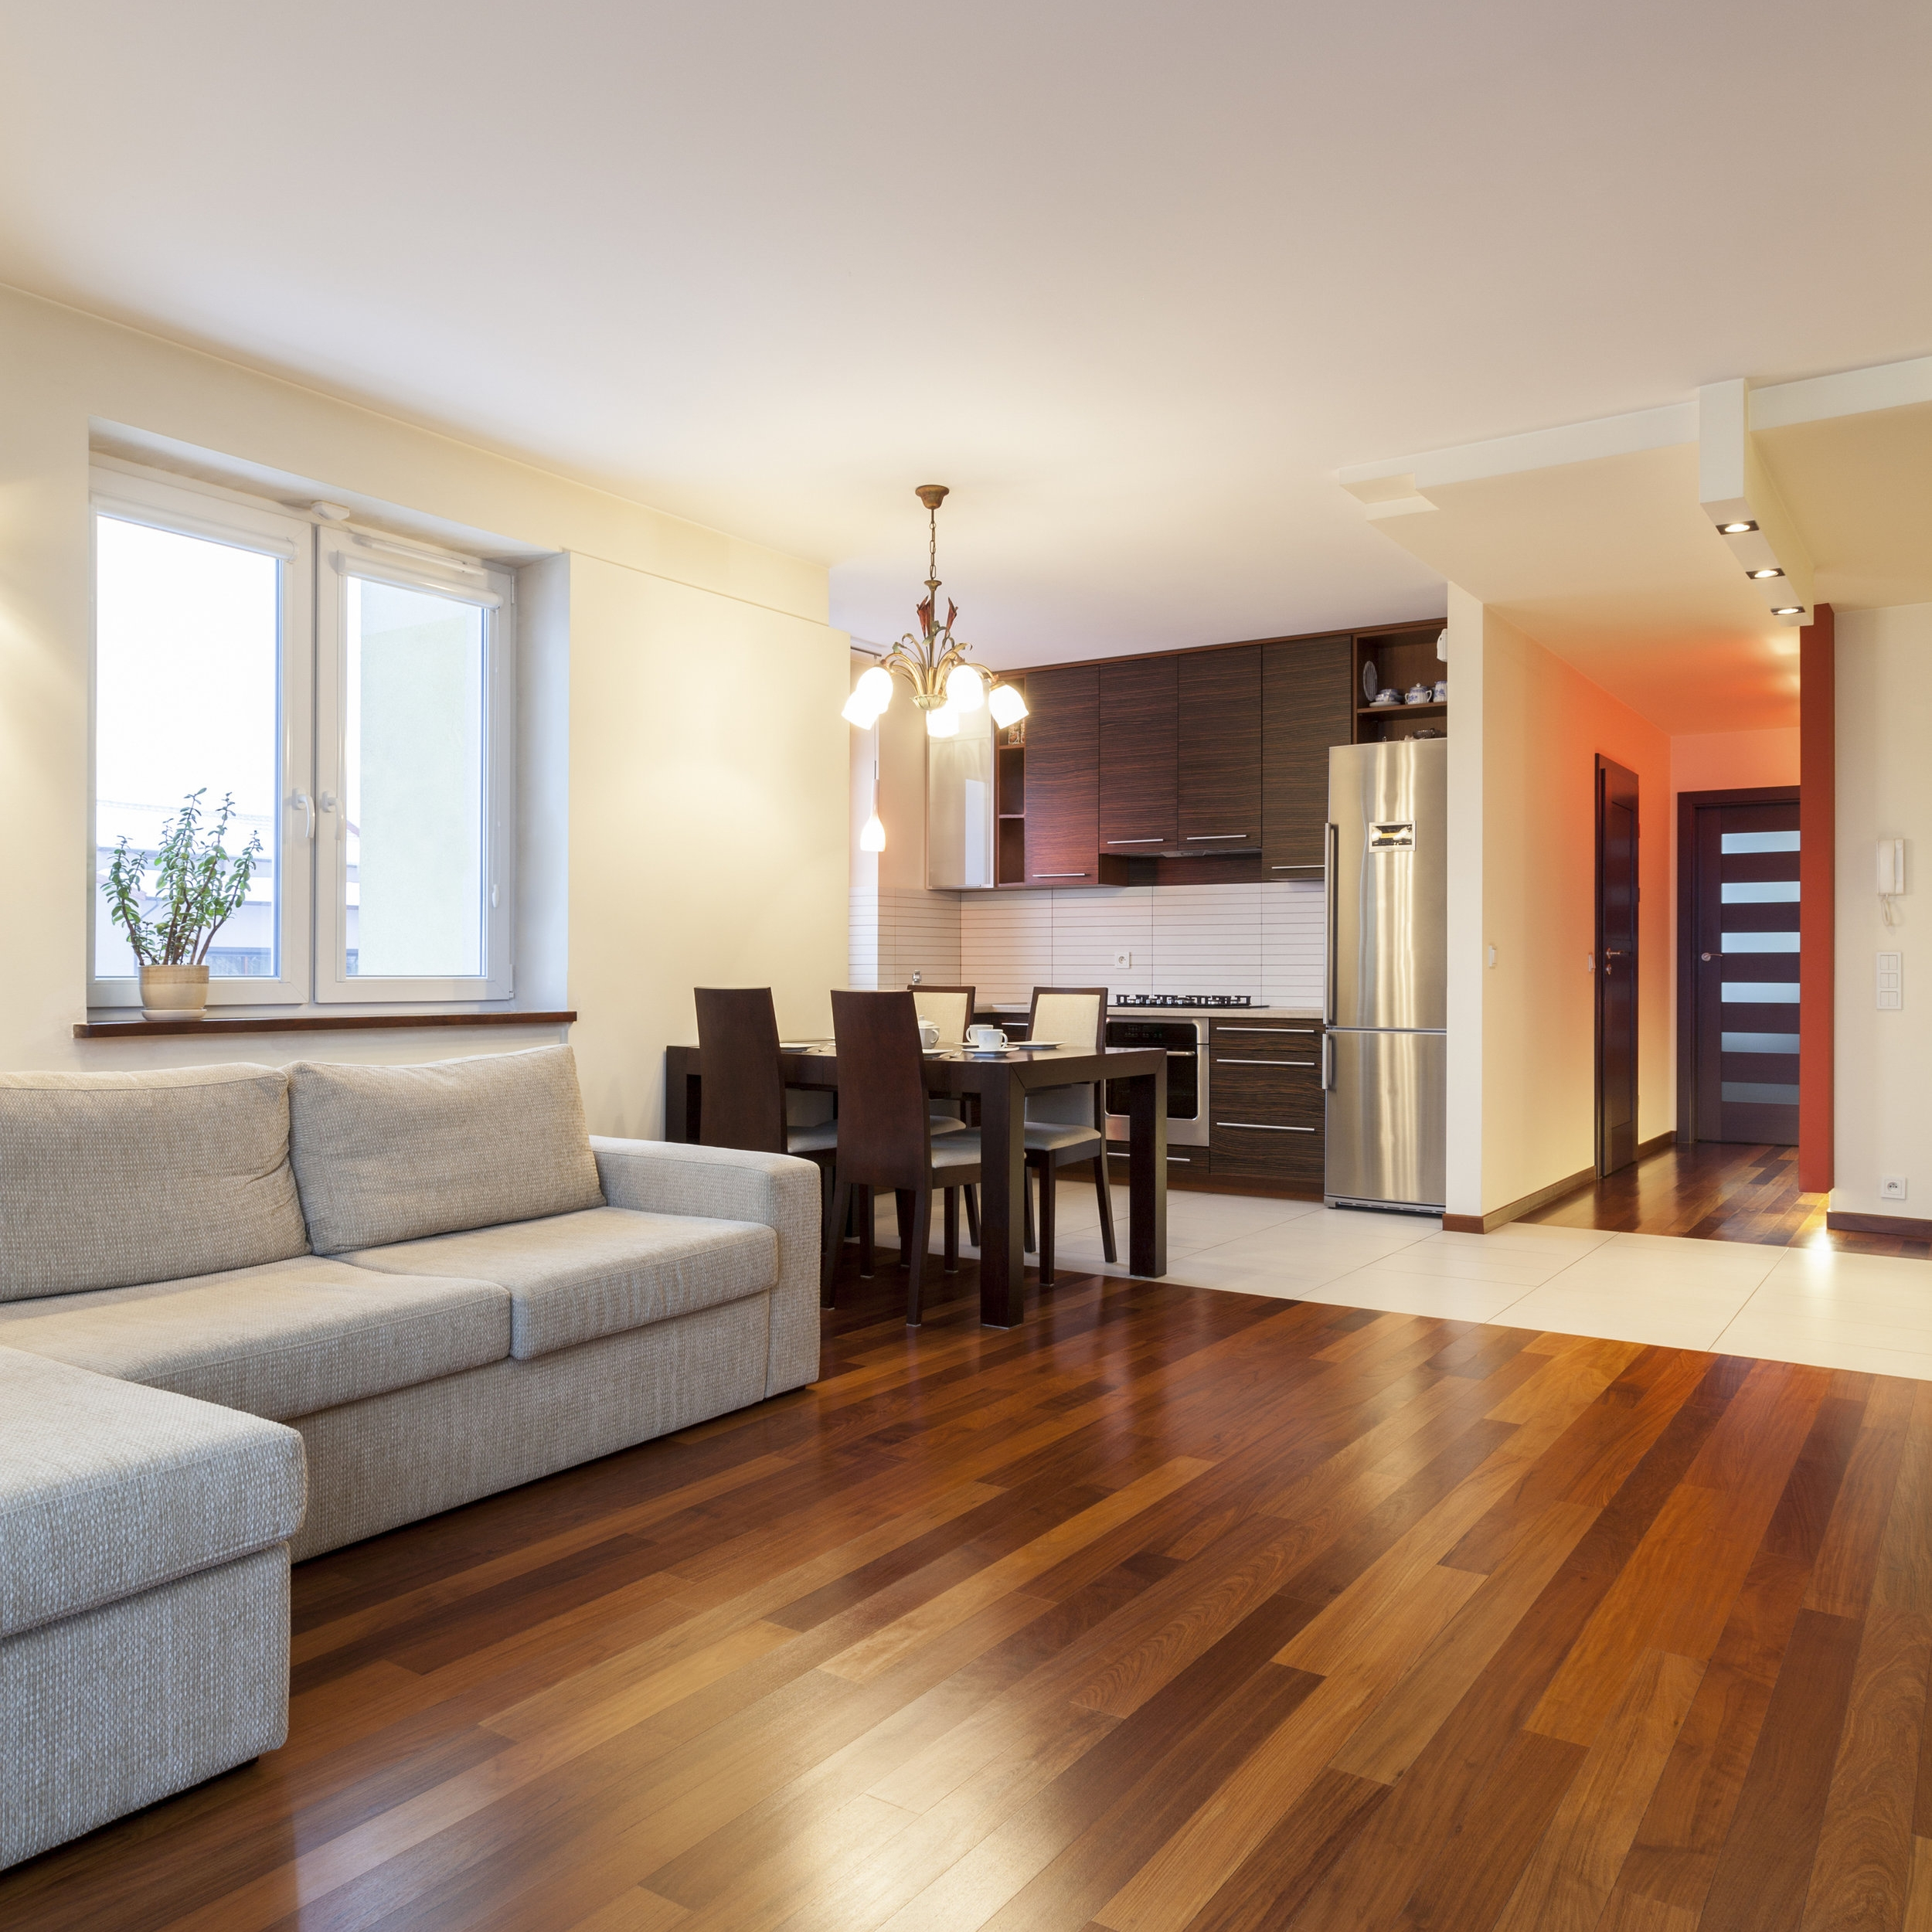 Hardwood and vinyl flooring